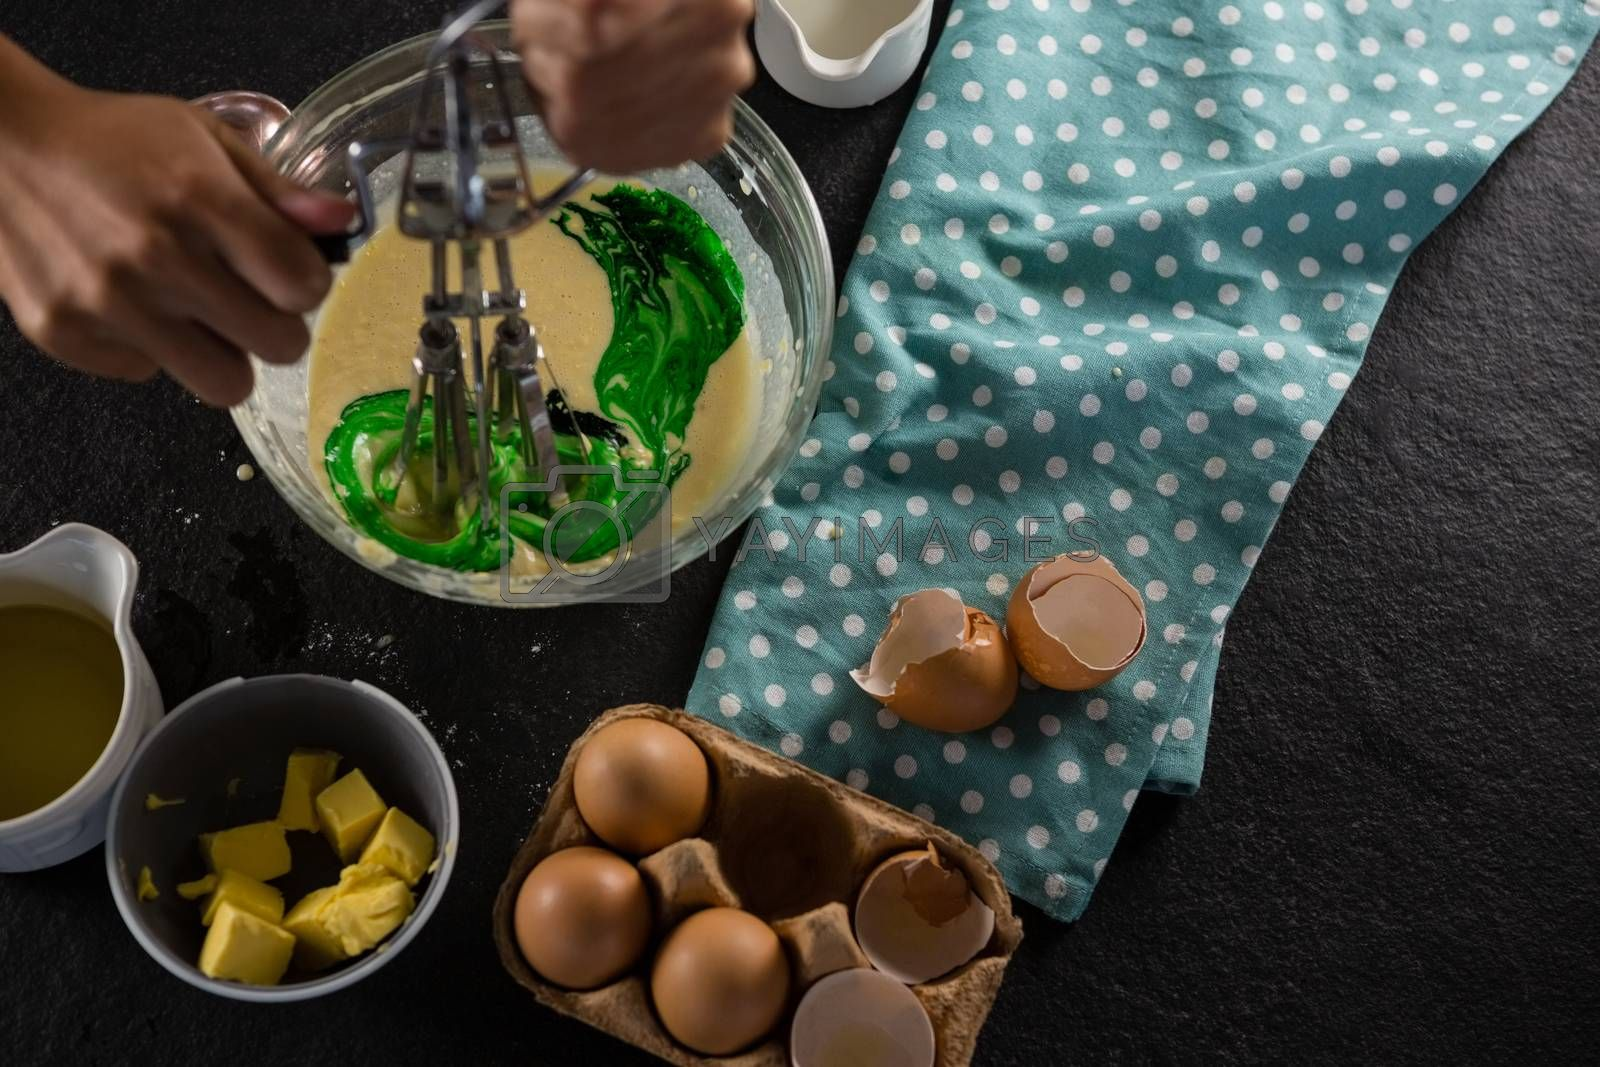 Woman whisking batter after adding green food color by Wavebreakmedia